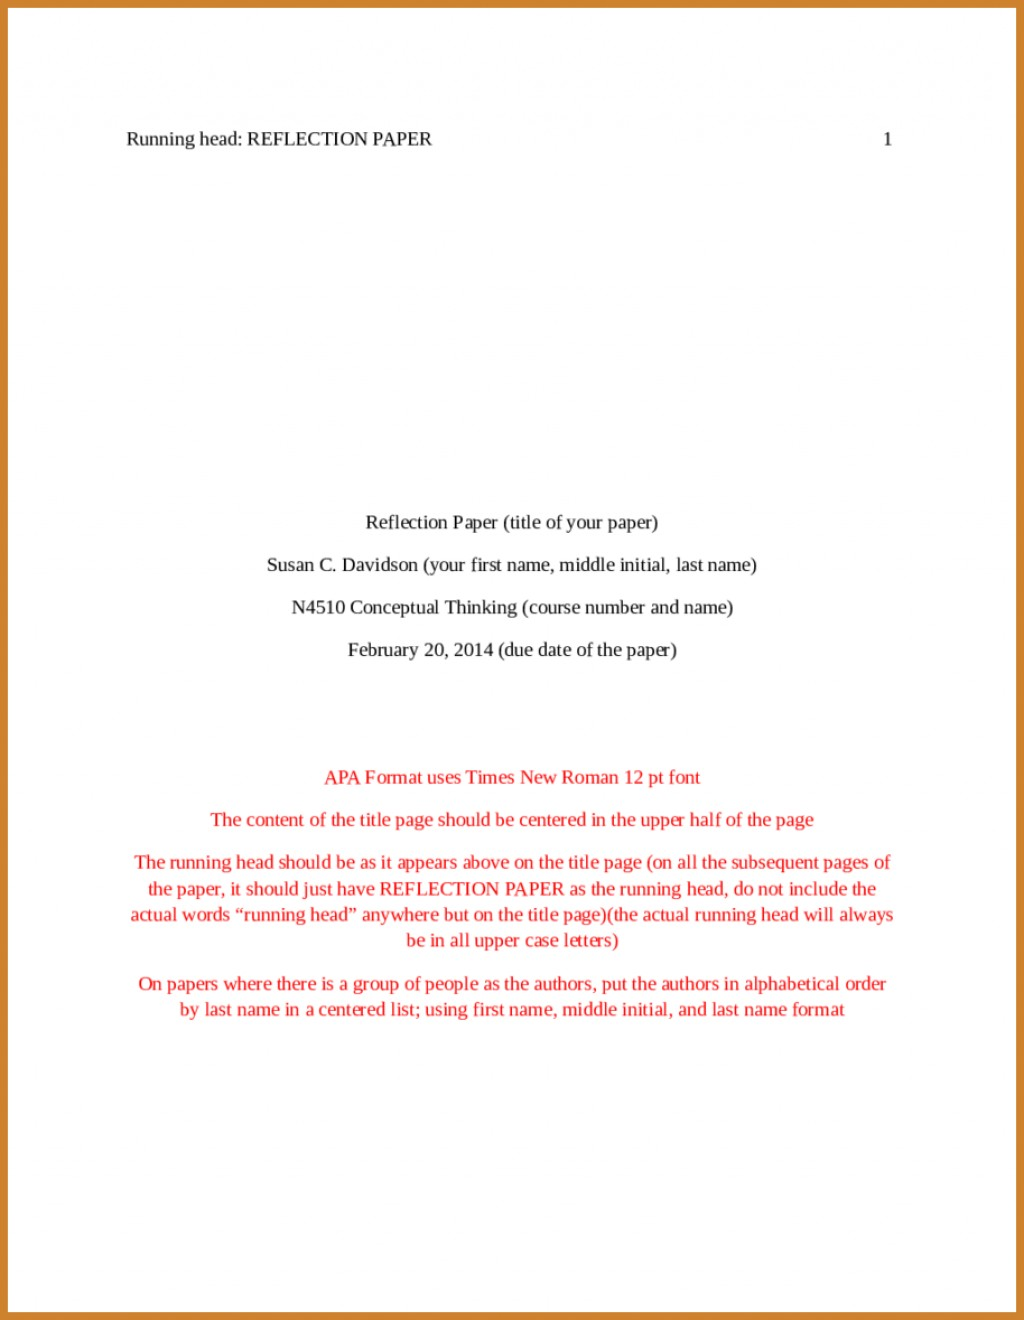 010 Research Paper Title Page Notary Letter Mla Format Cover In Apaapa Appealing Front Example Of First Unique Style For The A Large